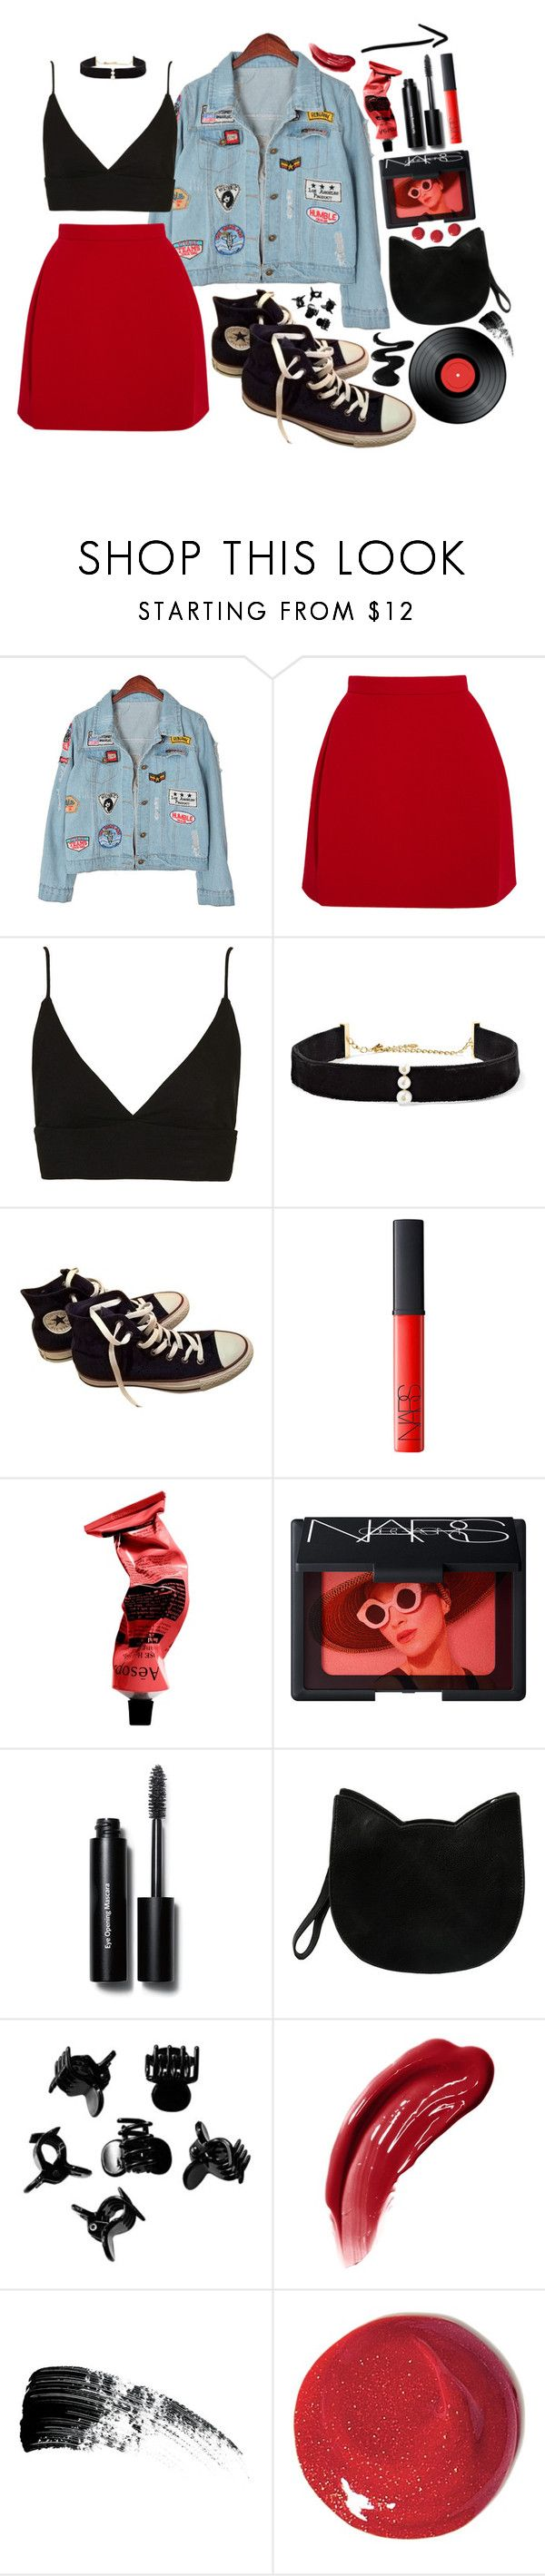 """Red skirt"" by vitoriabett ❤ liked on Polyvore featuring Chicnova Fashion, Delpozo, Topshop, Anissa Kermiche, Converse, NARS Cosmetics, Aesop, Bobbi Brown Cosmetics, Clips and H&M"